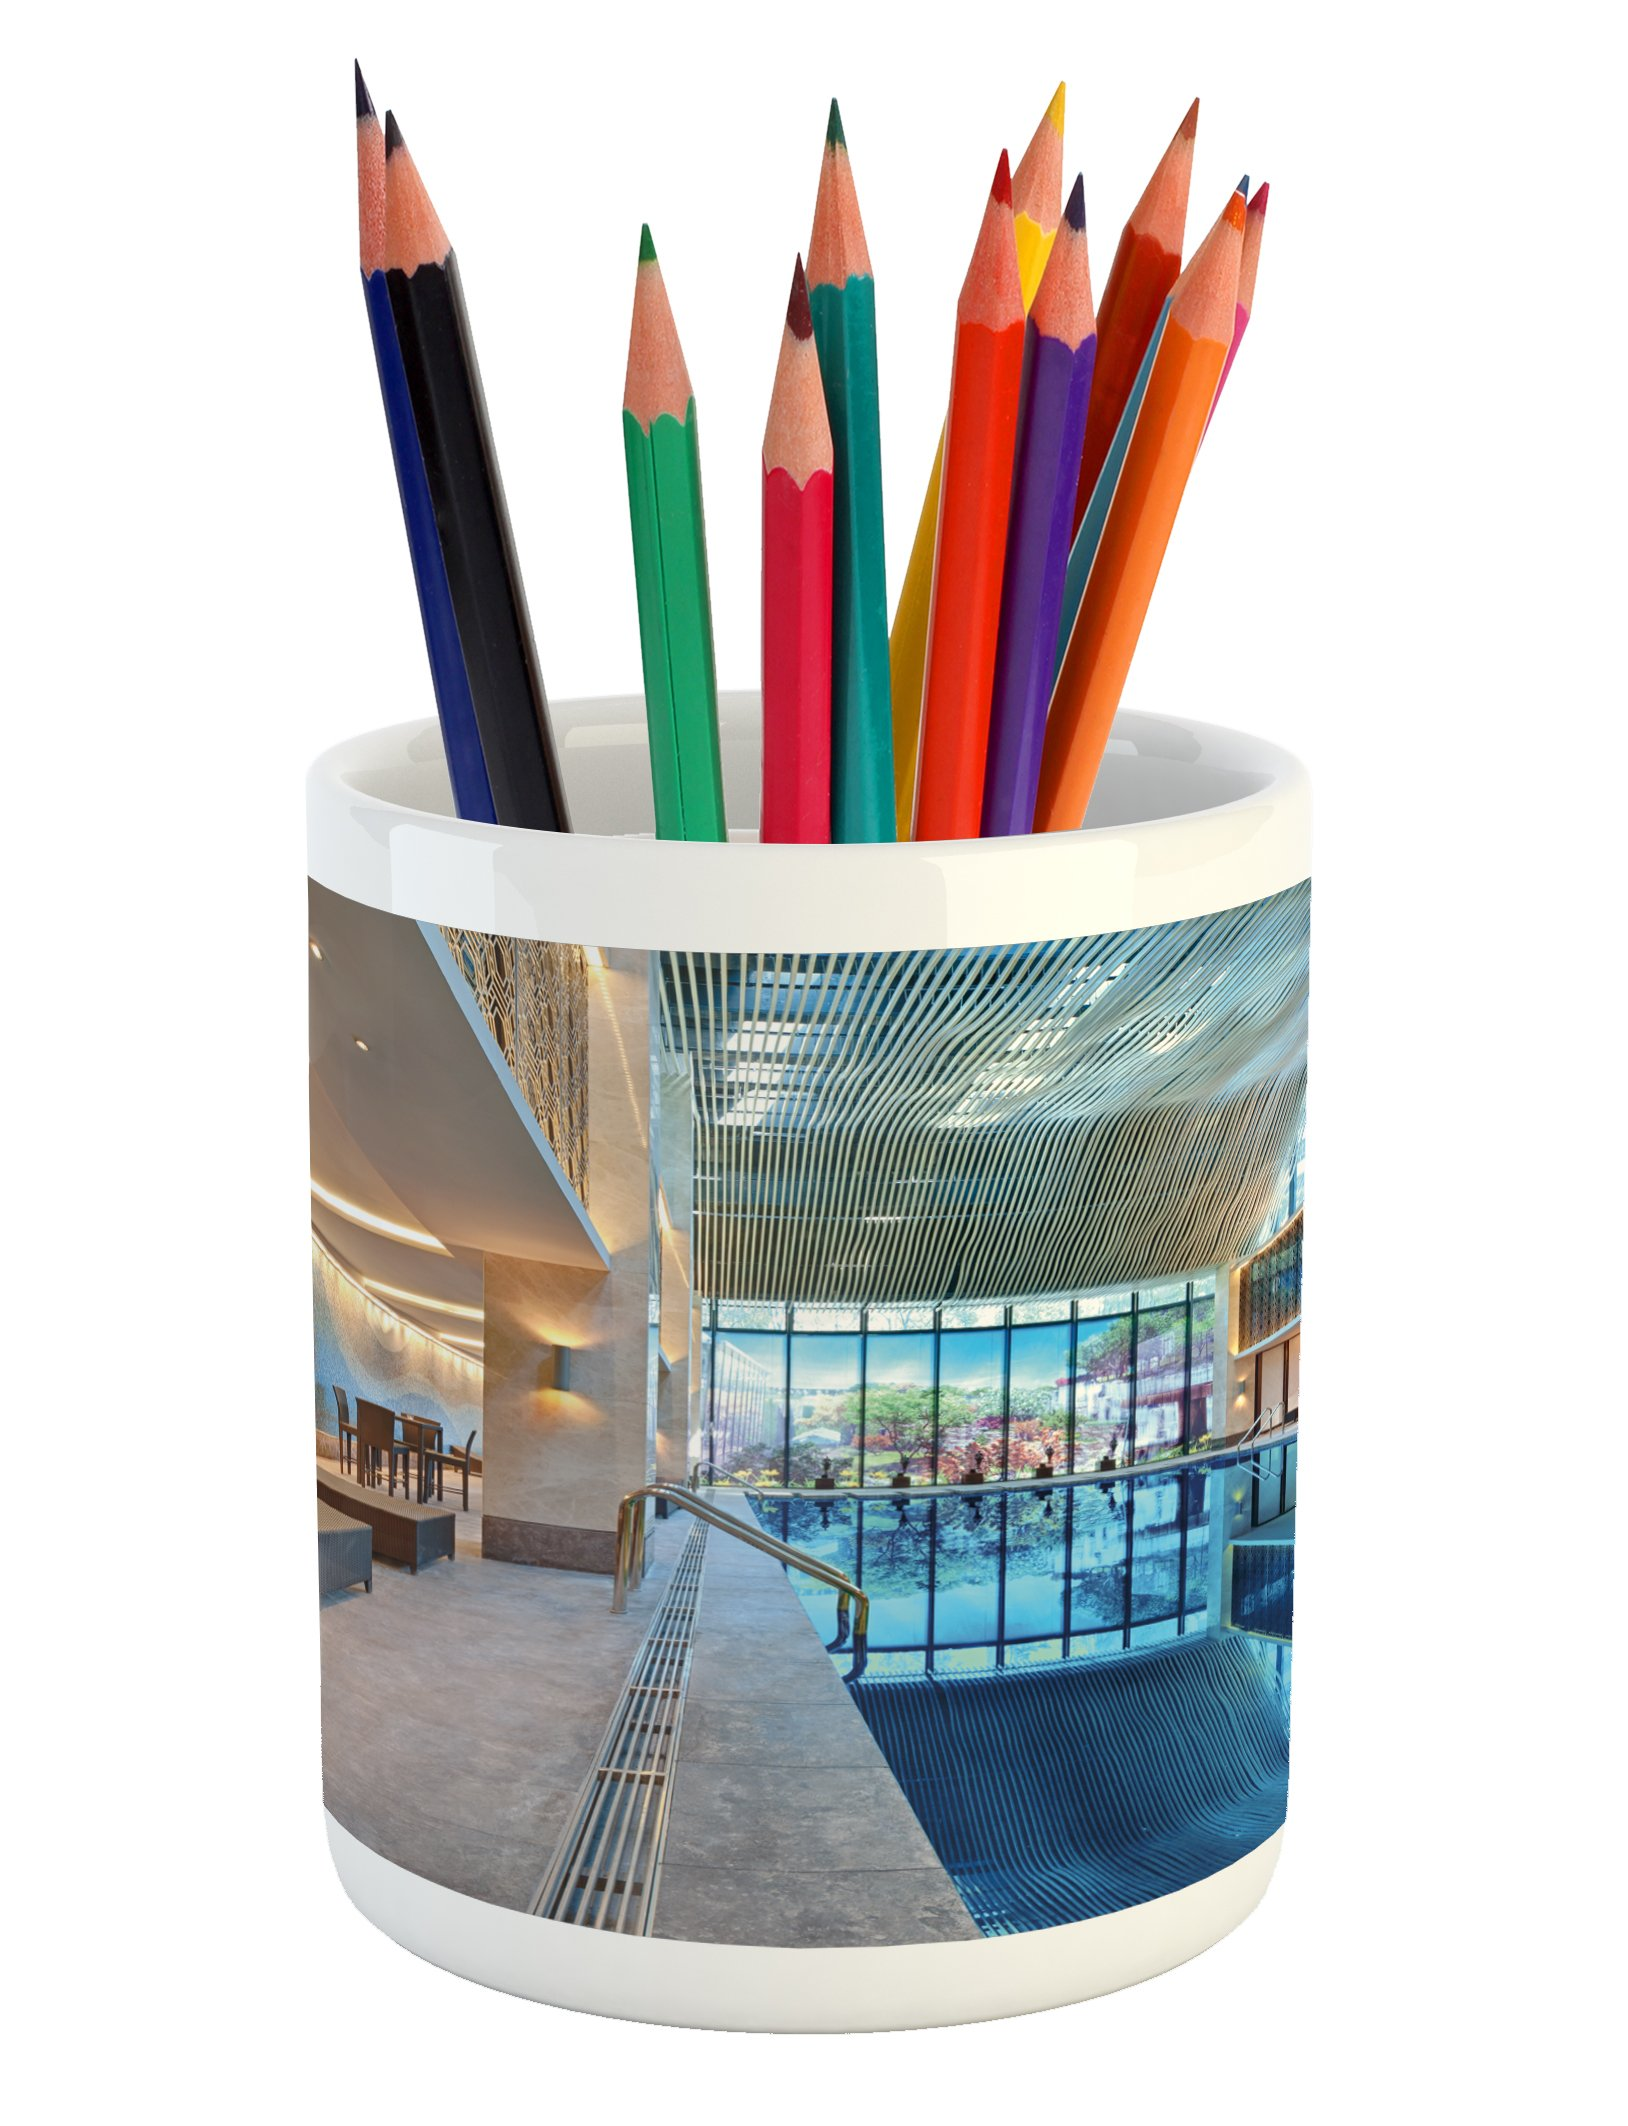 Ambesonne Spa Pencil Pen Holder, Indoor Swimming Pool with Relaxing Long Seats Calming Image Print, Printed Ceramic Pencil Pen Holder for Desk Office Accessory, Turquoise Pale Blue and White